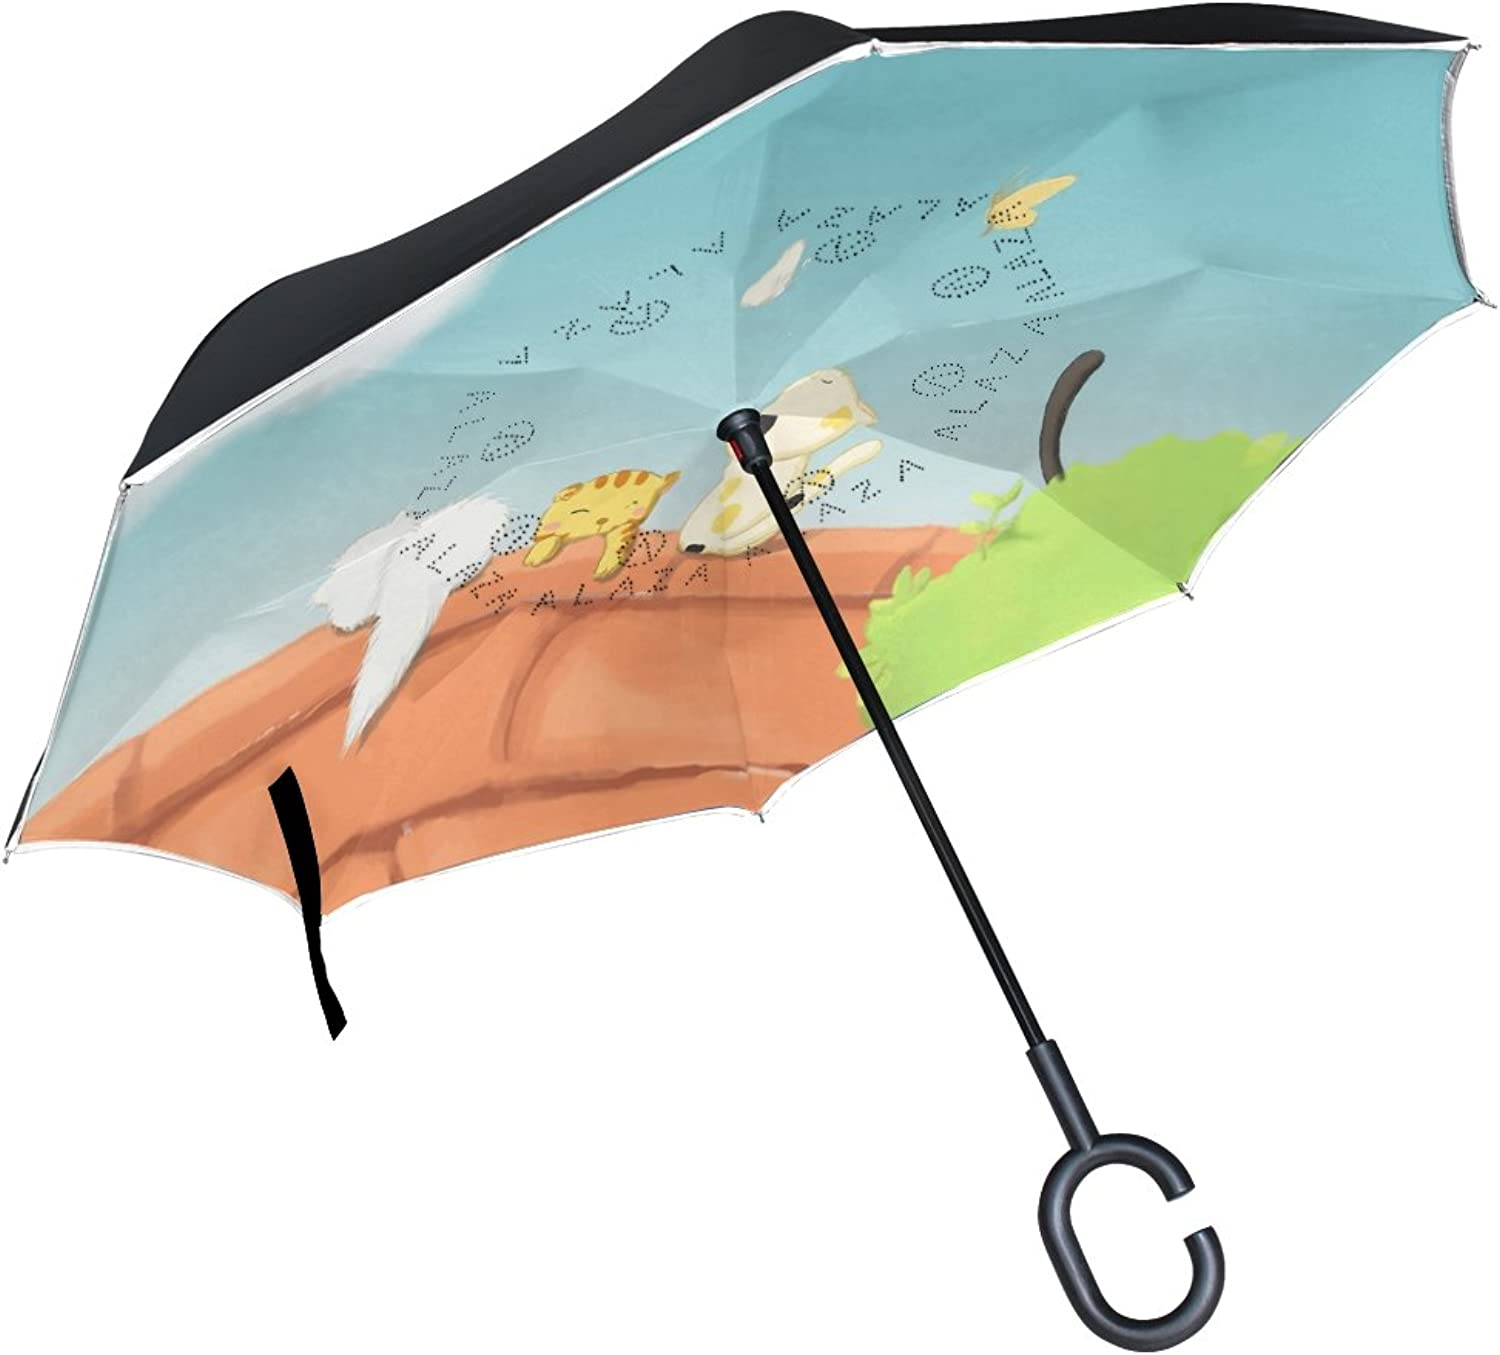 OREZI Double Layer Ingreened Umbrella Reverse Umbrella,Windproof UV Predection Big Straight Umbrella Inside Out Travel Umbrella for Rain Outdoor with CShaped Handle,Cat Play with Butterfly Umbrella